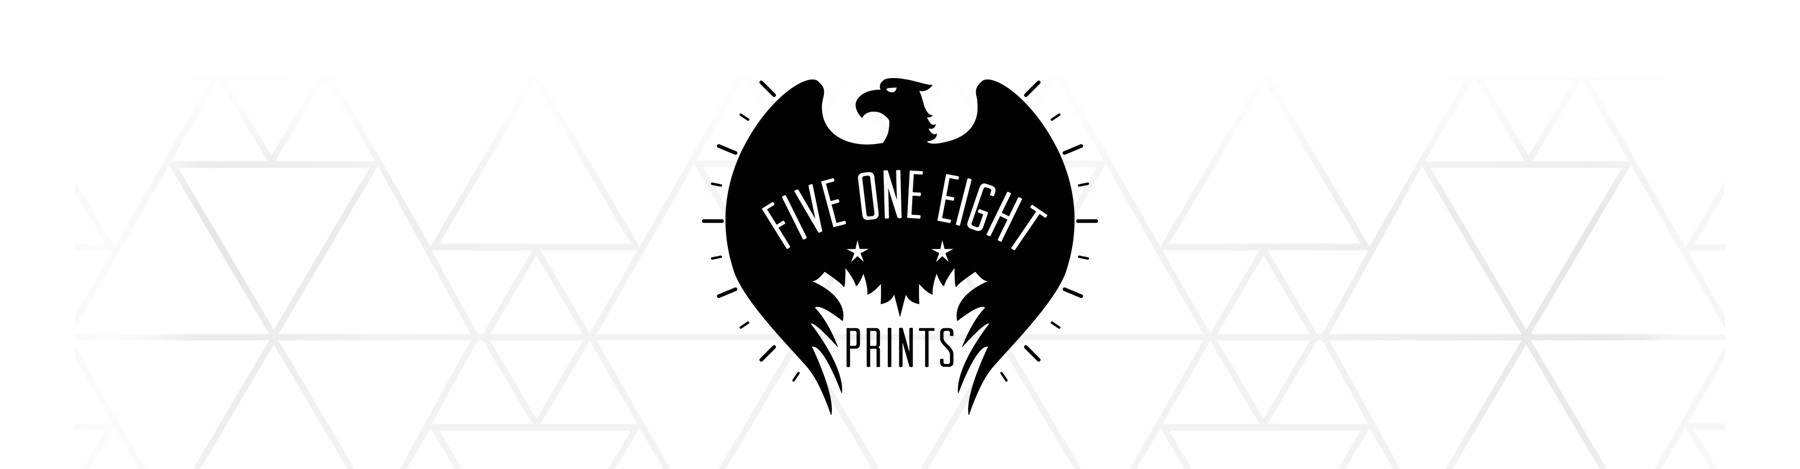 518 Prints | United States | Screen Printing, Design, Promo Merch